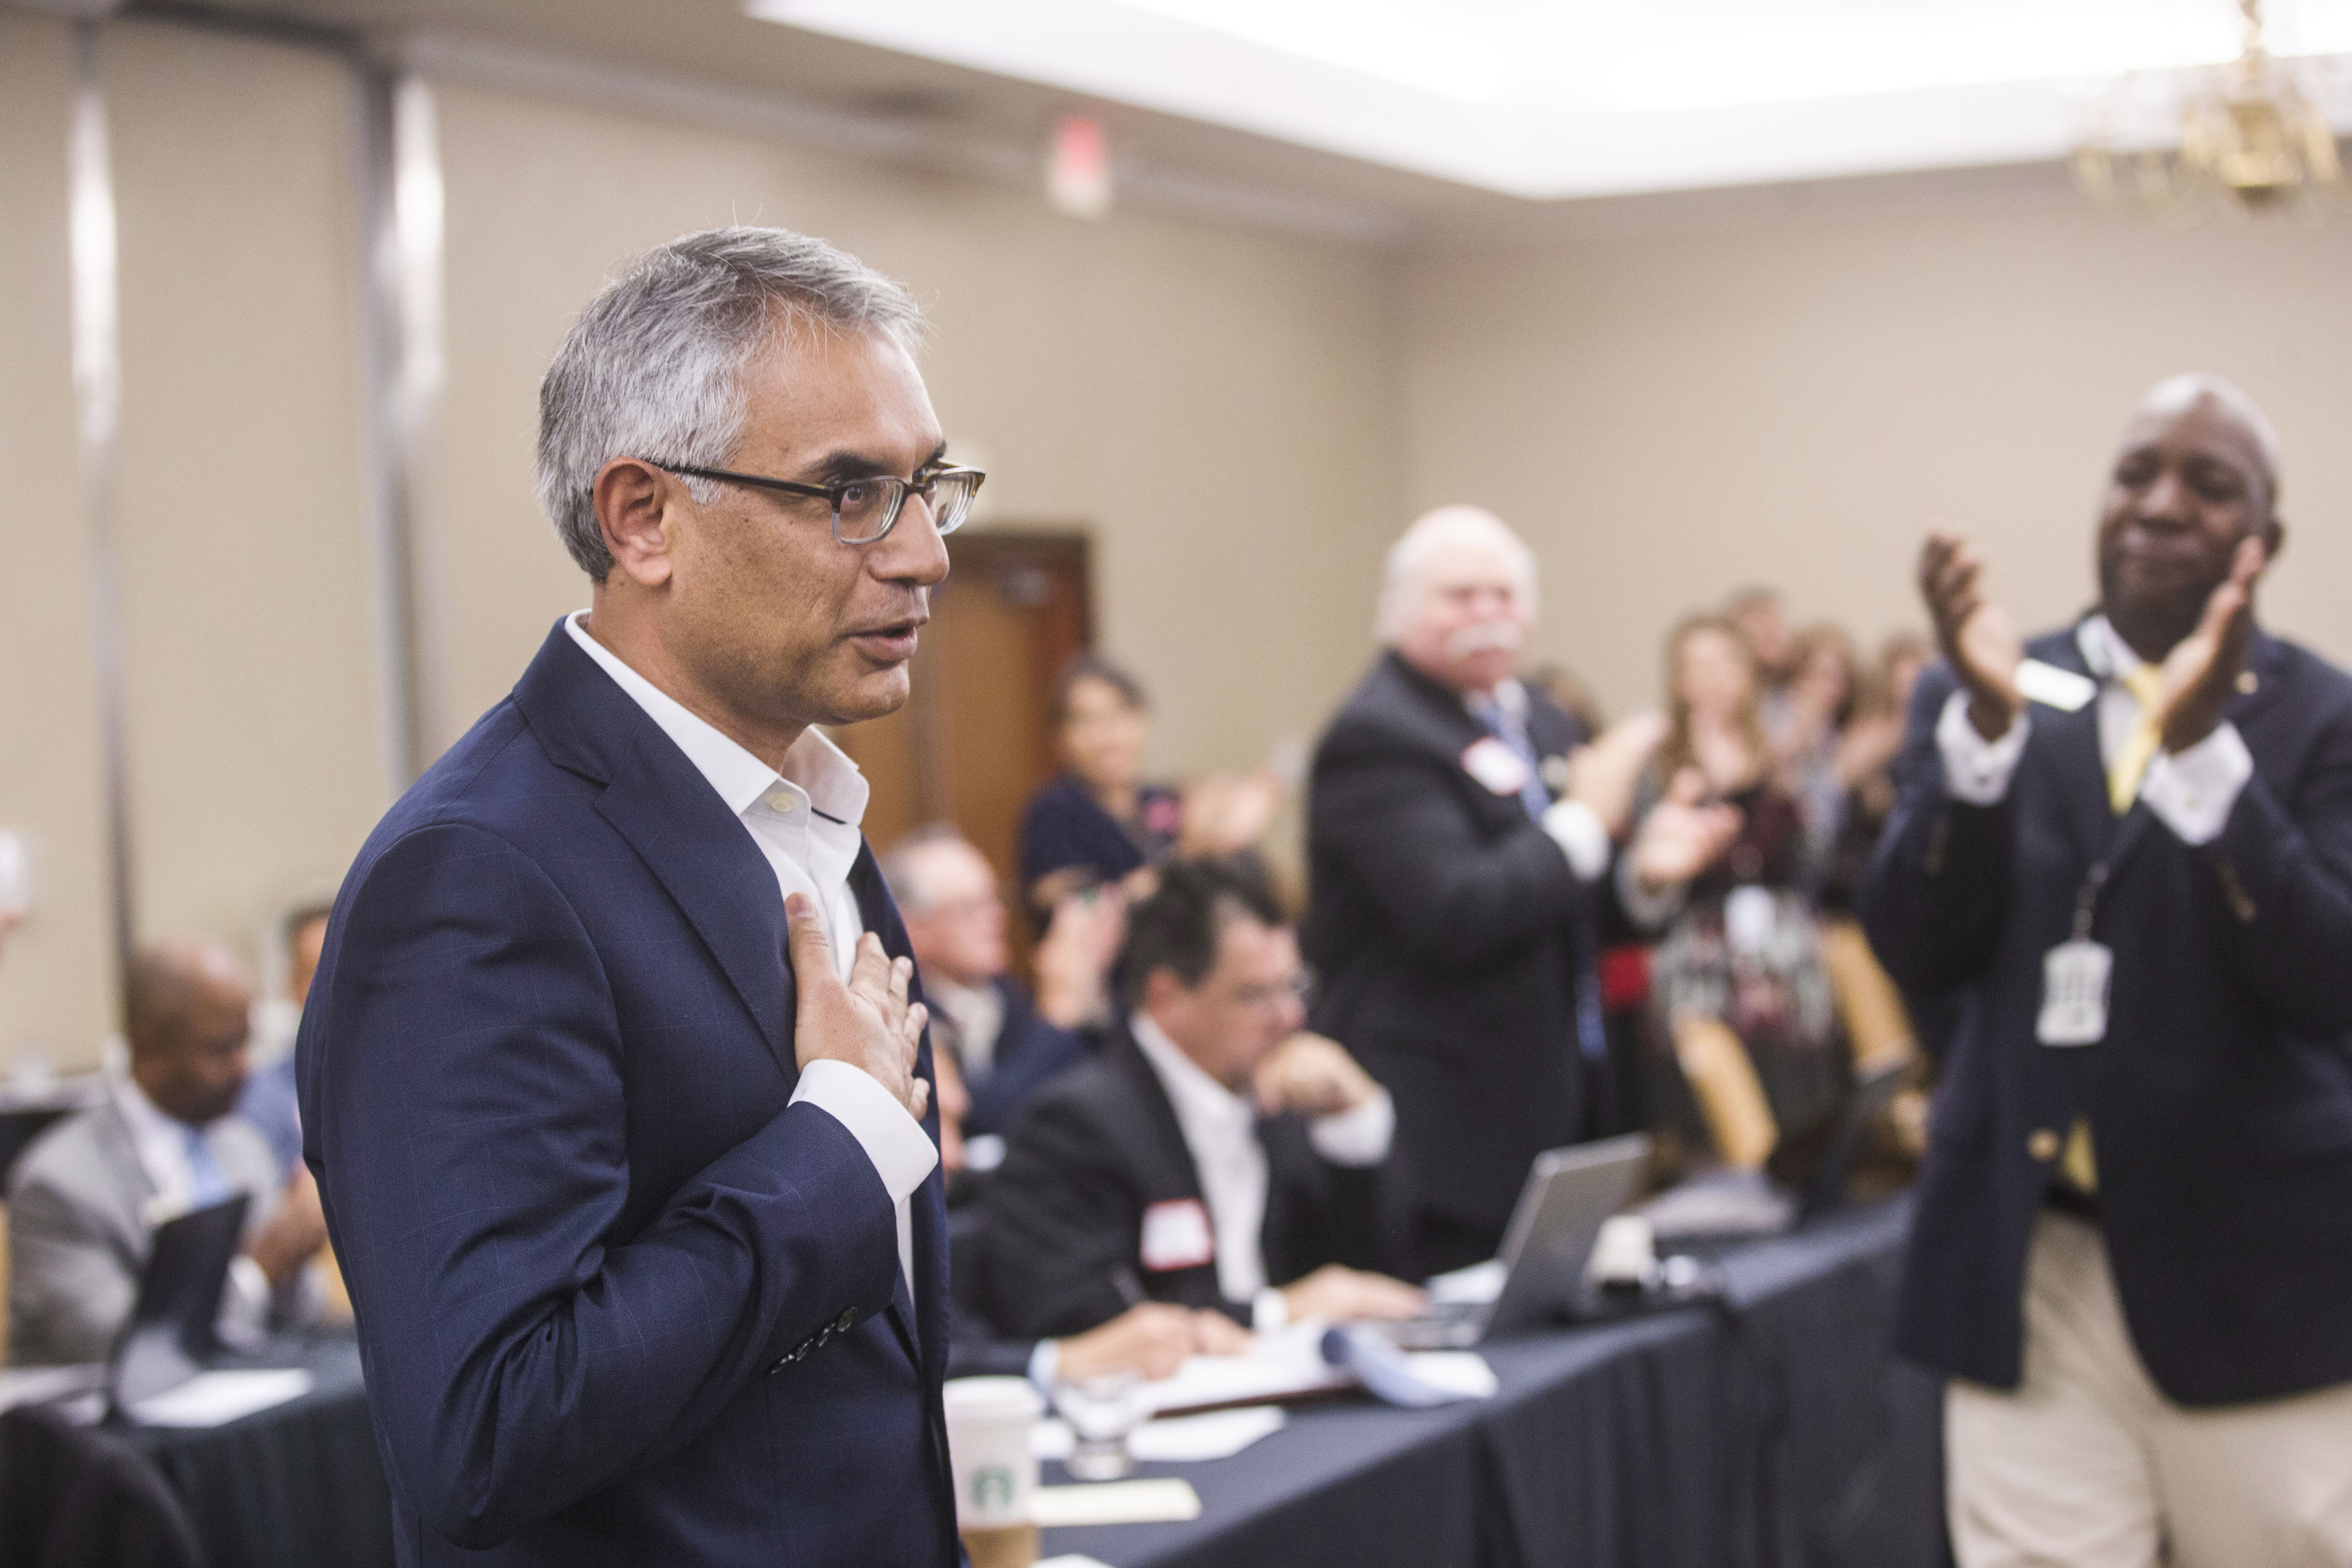 Texas Republicans overwhelmingly reject removal of Muslim county official